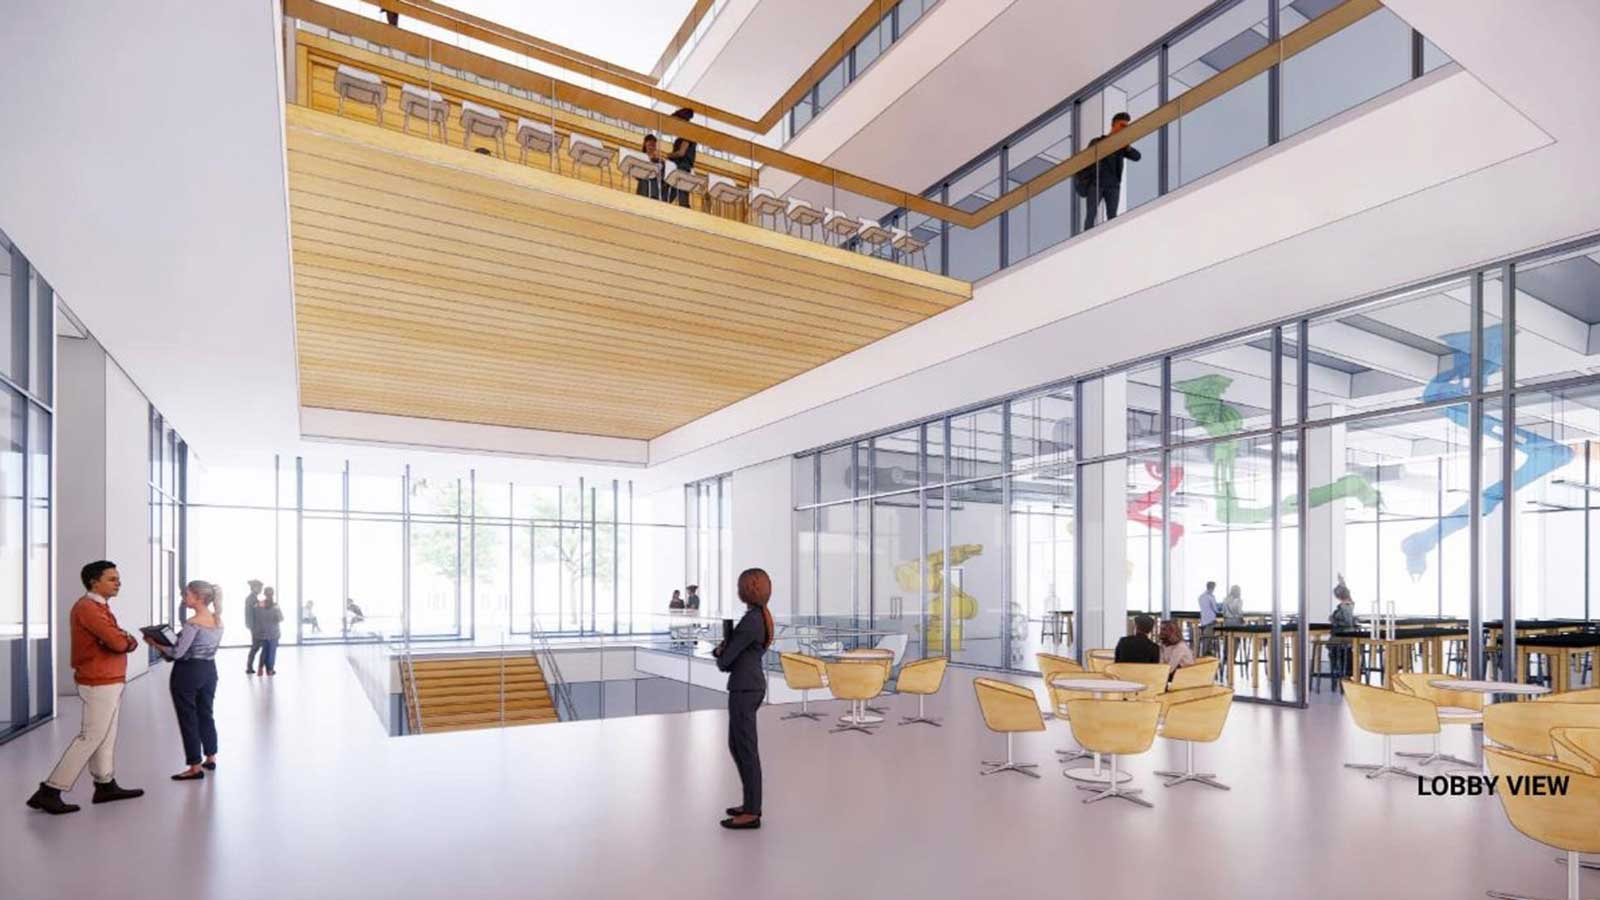 A preliminary rendering shows a concept for the lobby of the new science and engineering building on the site of the Abercrombie Engineering Laboratory, which will be demolished soon. Courtesy of SOM